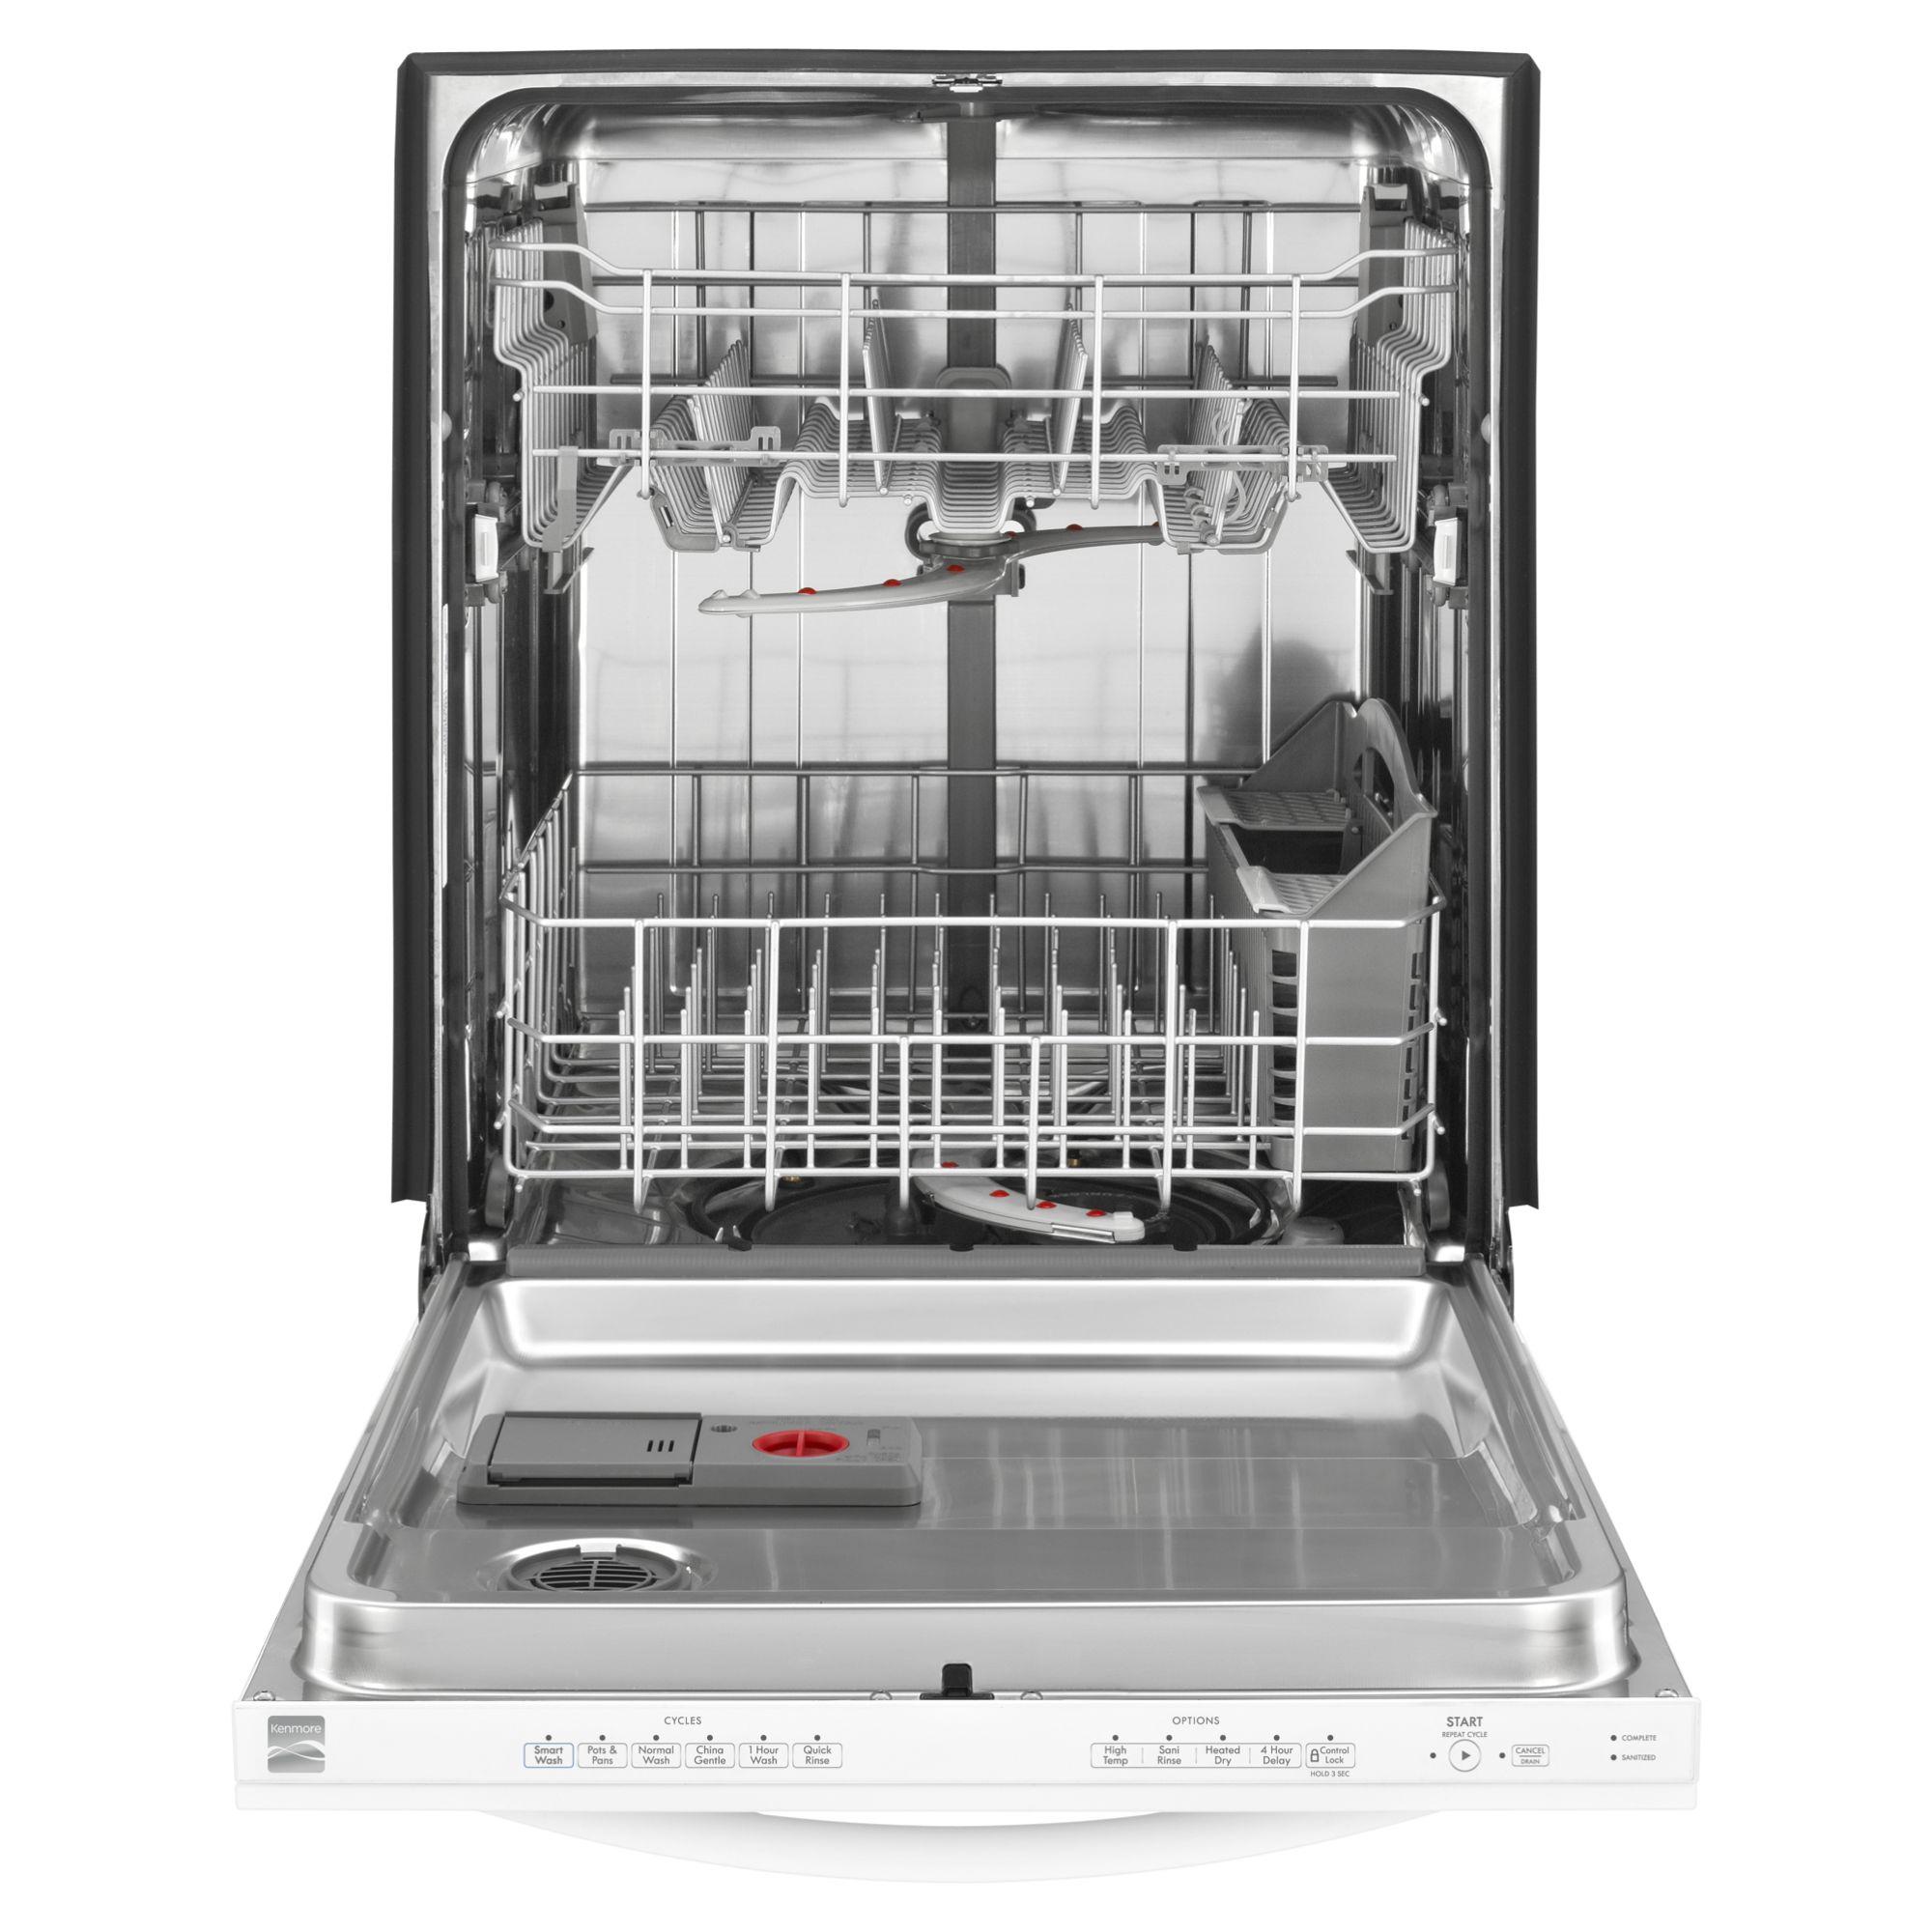 "Kenmore 24"" Built-In Dishwasher w/ Stainless Steel Tub - White"